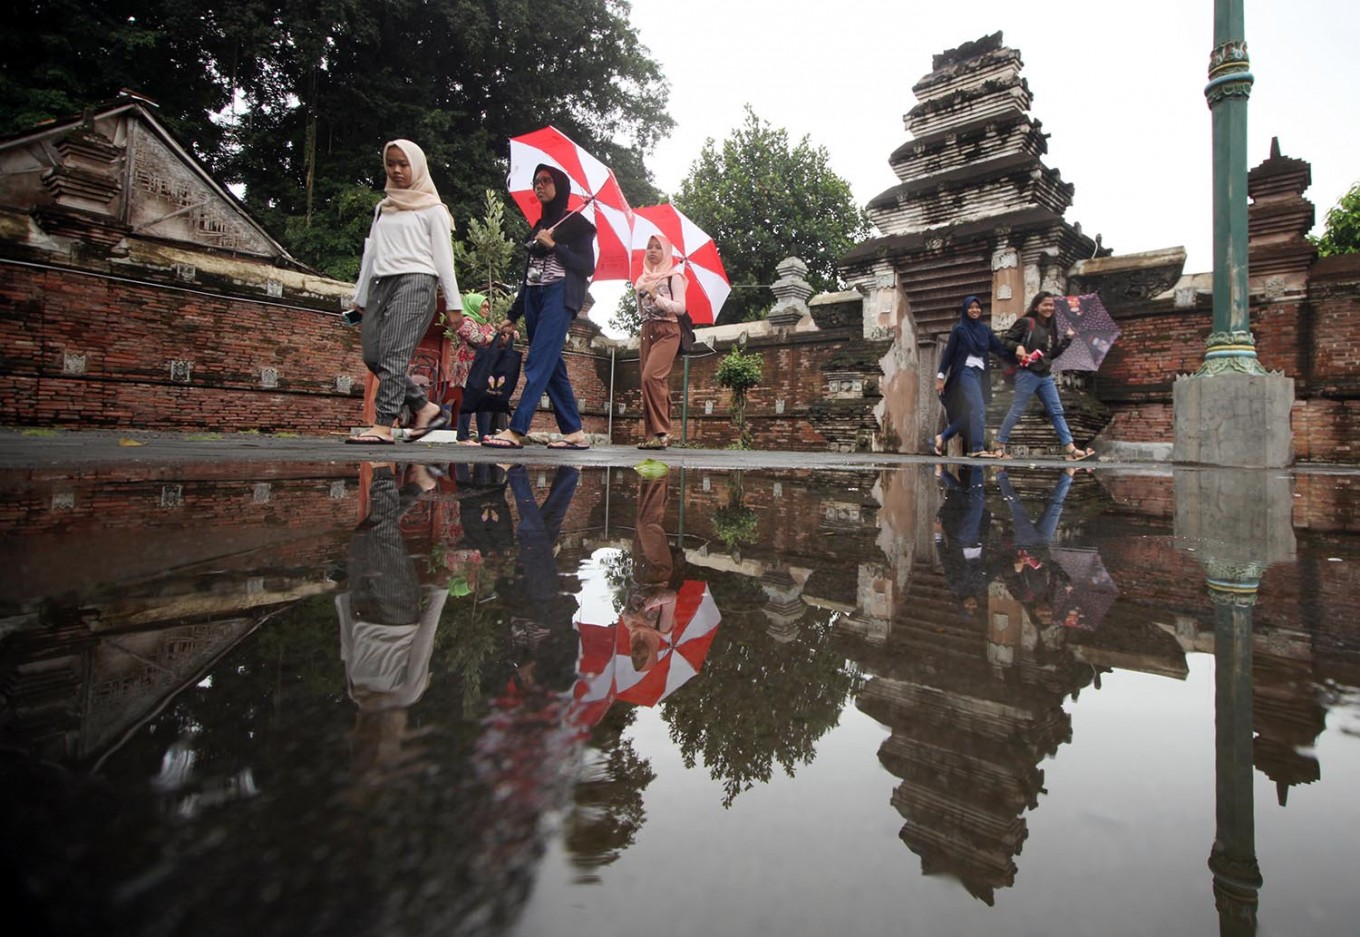 Visitors are using umbrellas to cover themselves from the rain. JP/Boy T. Harjanto